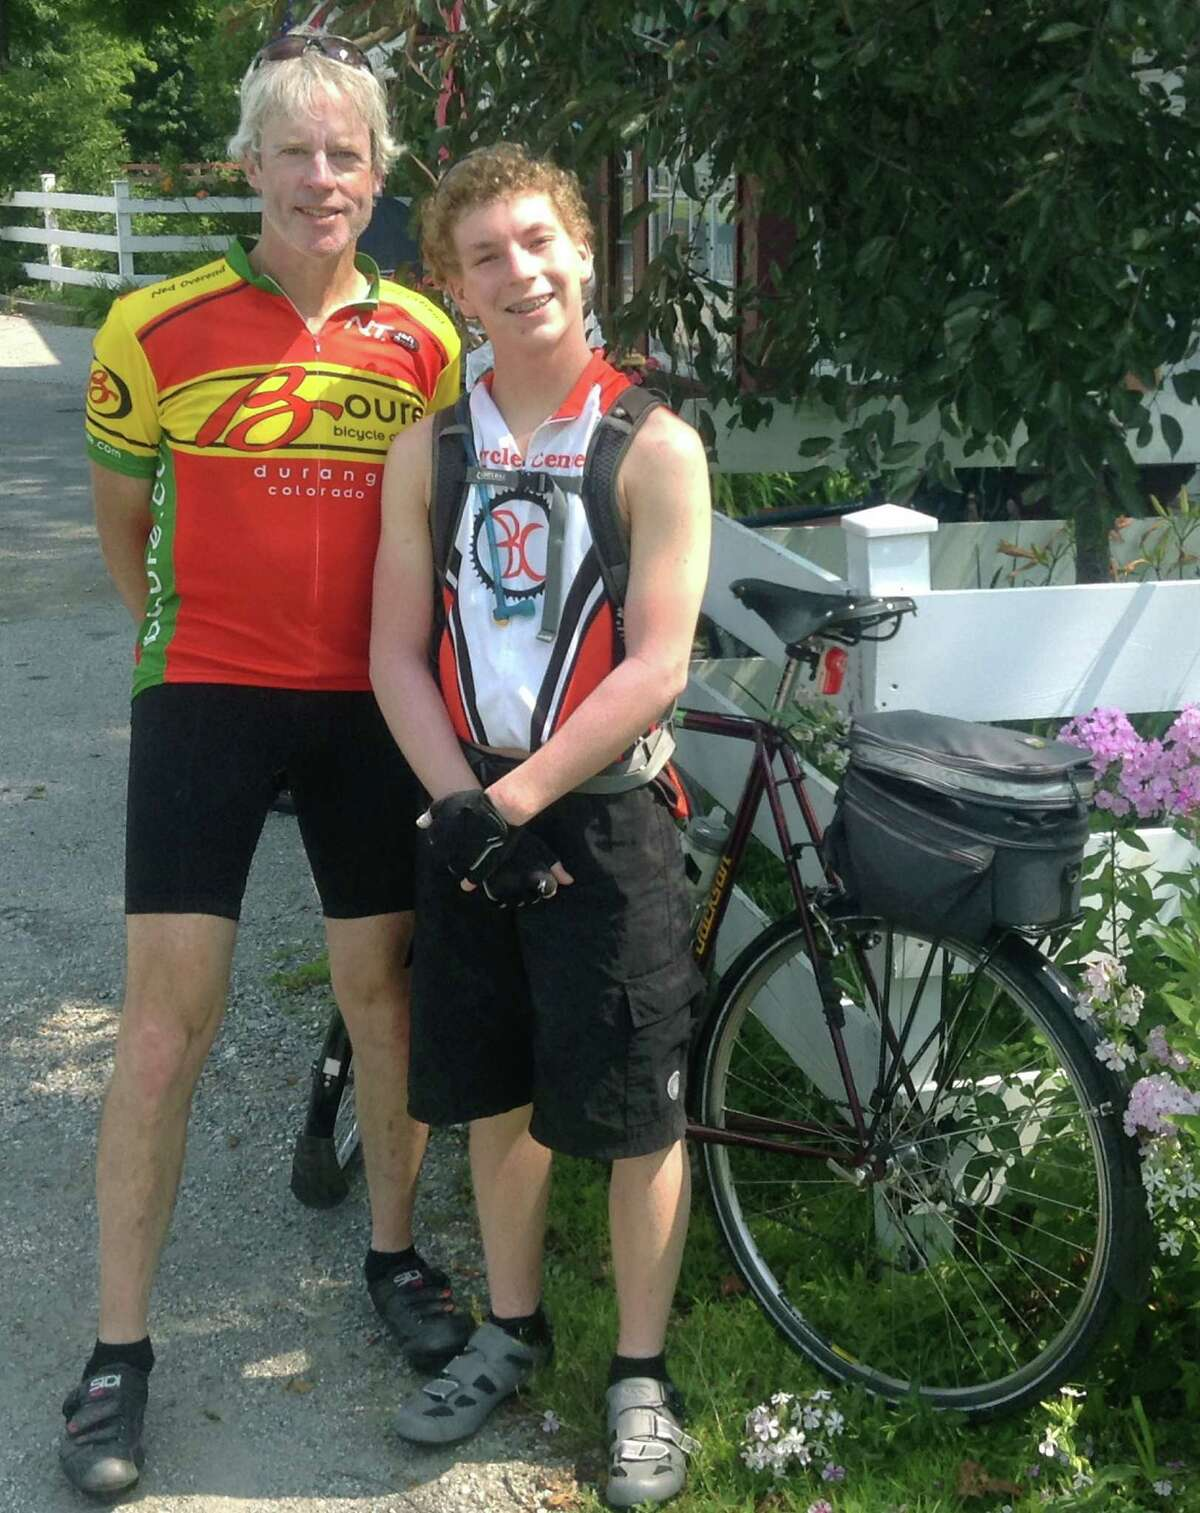 Tom O'Brien and his son, Jake, 16, of New Miilford pose Tuesday, July 22, 2014 at the general store in East Poultney, Vermont for a keepsake photo along their bicycle ride from Burlington to the Long Island Sound. The O'Briens and their fellow cyclists are expected to be in New Milford Friday, July 25 about 4 p.m. before resuming their ride southward along Route 7. Courtesy of Tom O'Brien